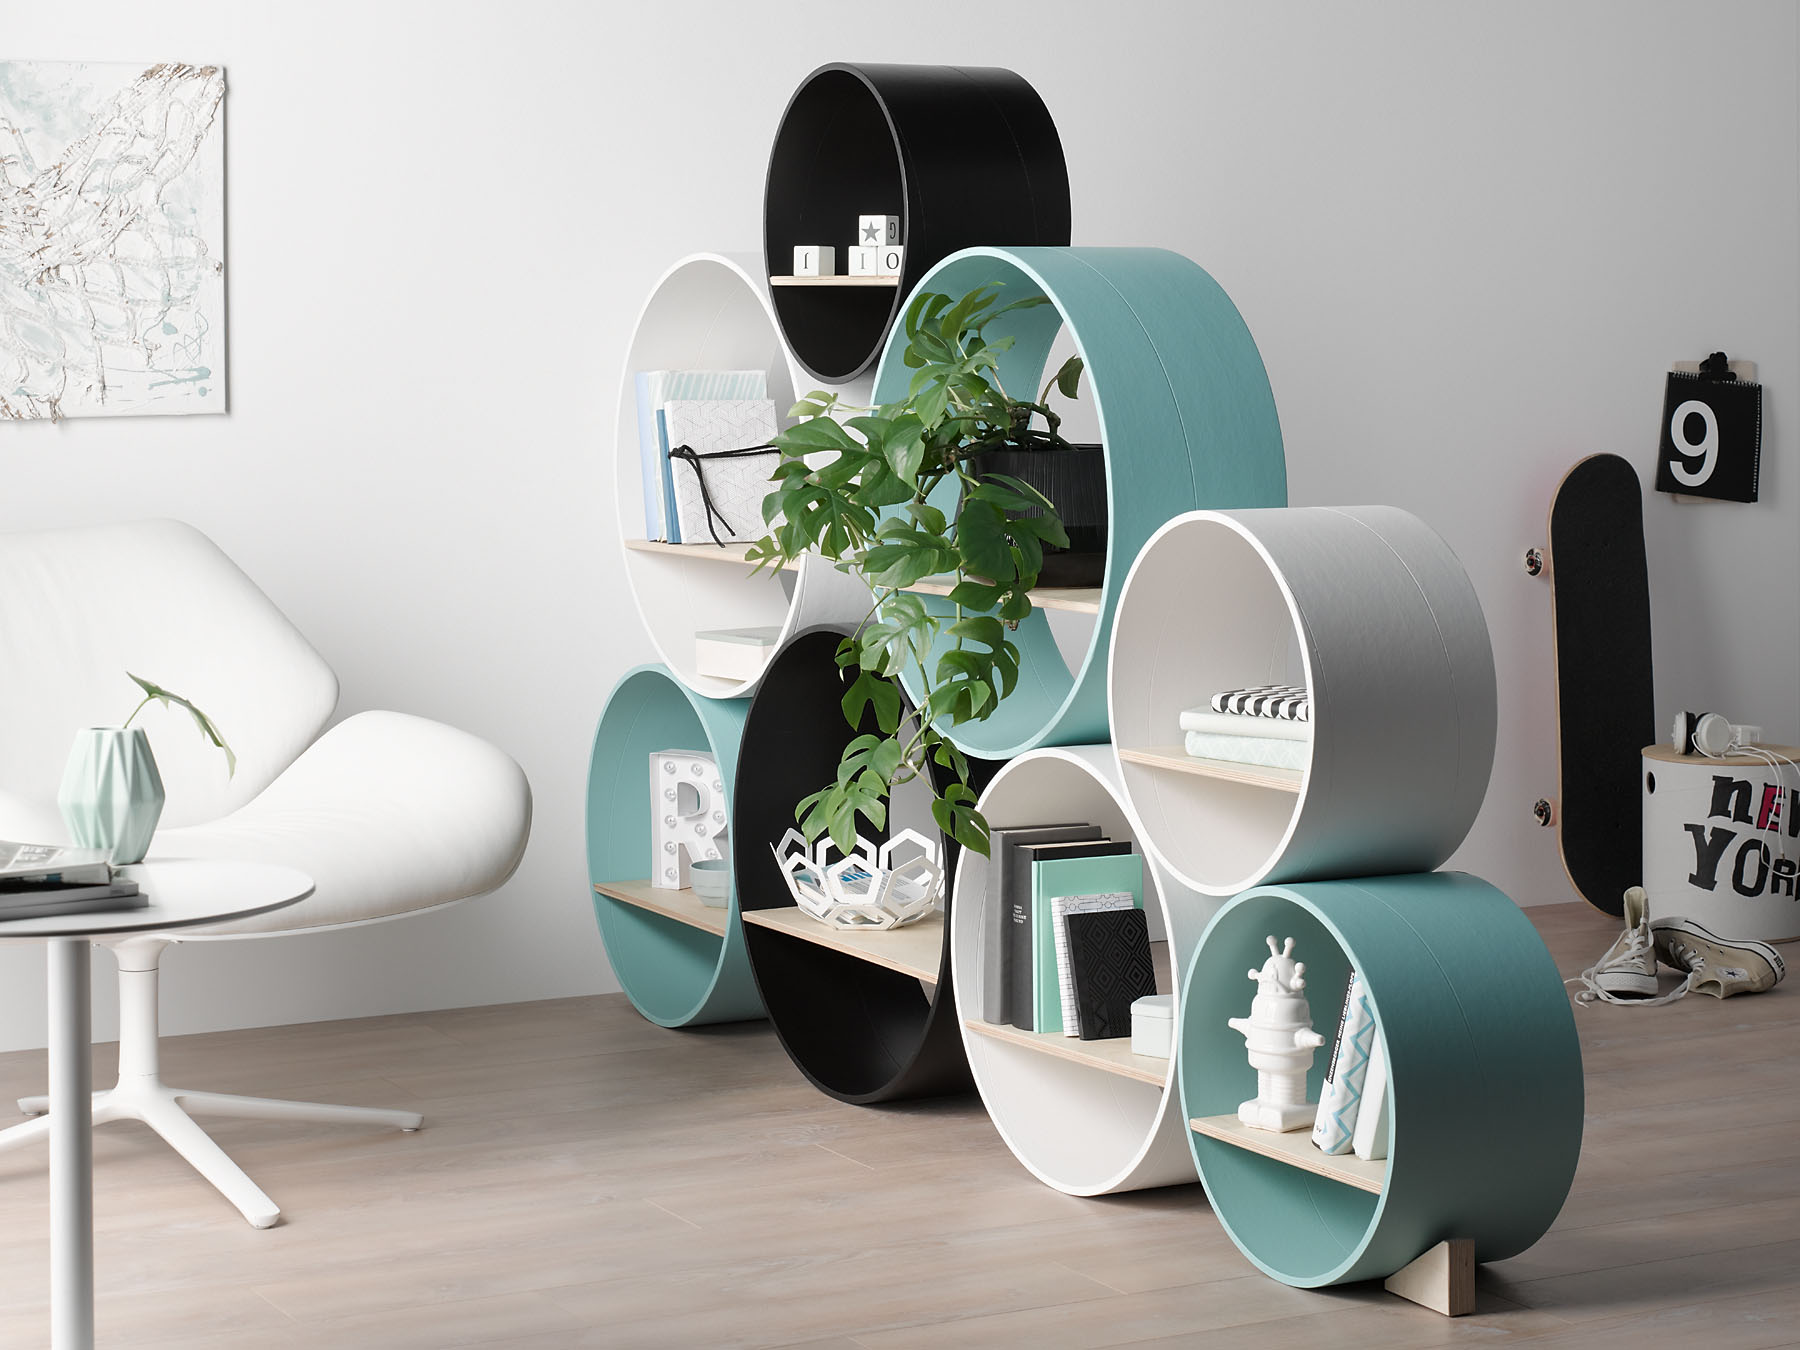 rund stil runde m bel aus hartpapierh lsen. Black Bedroom Furniture Sets. Home Design Ideas